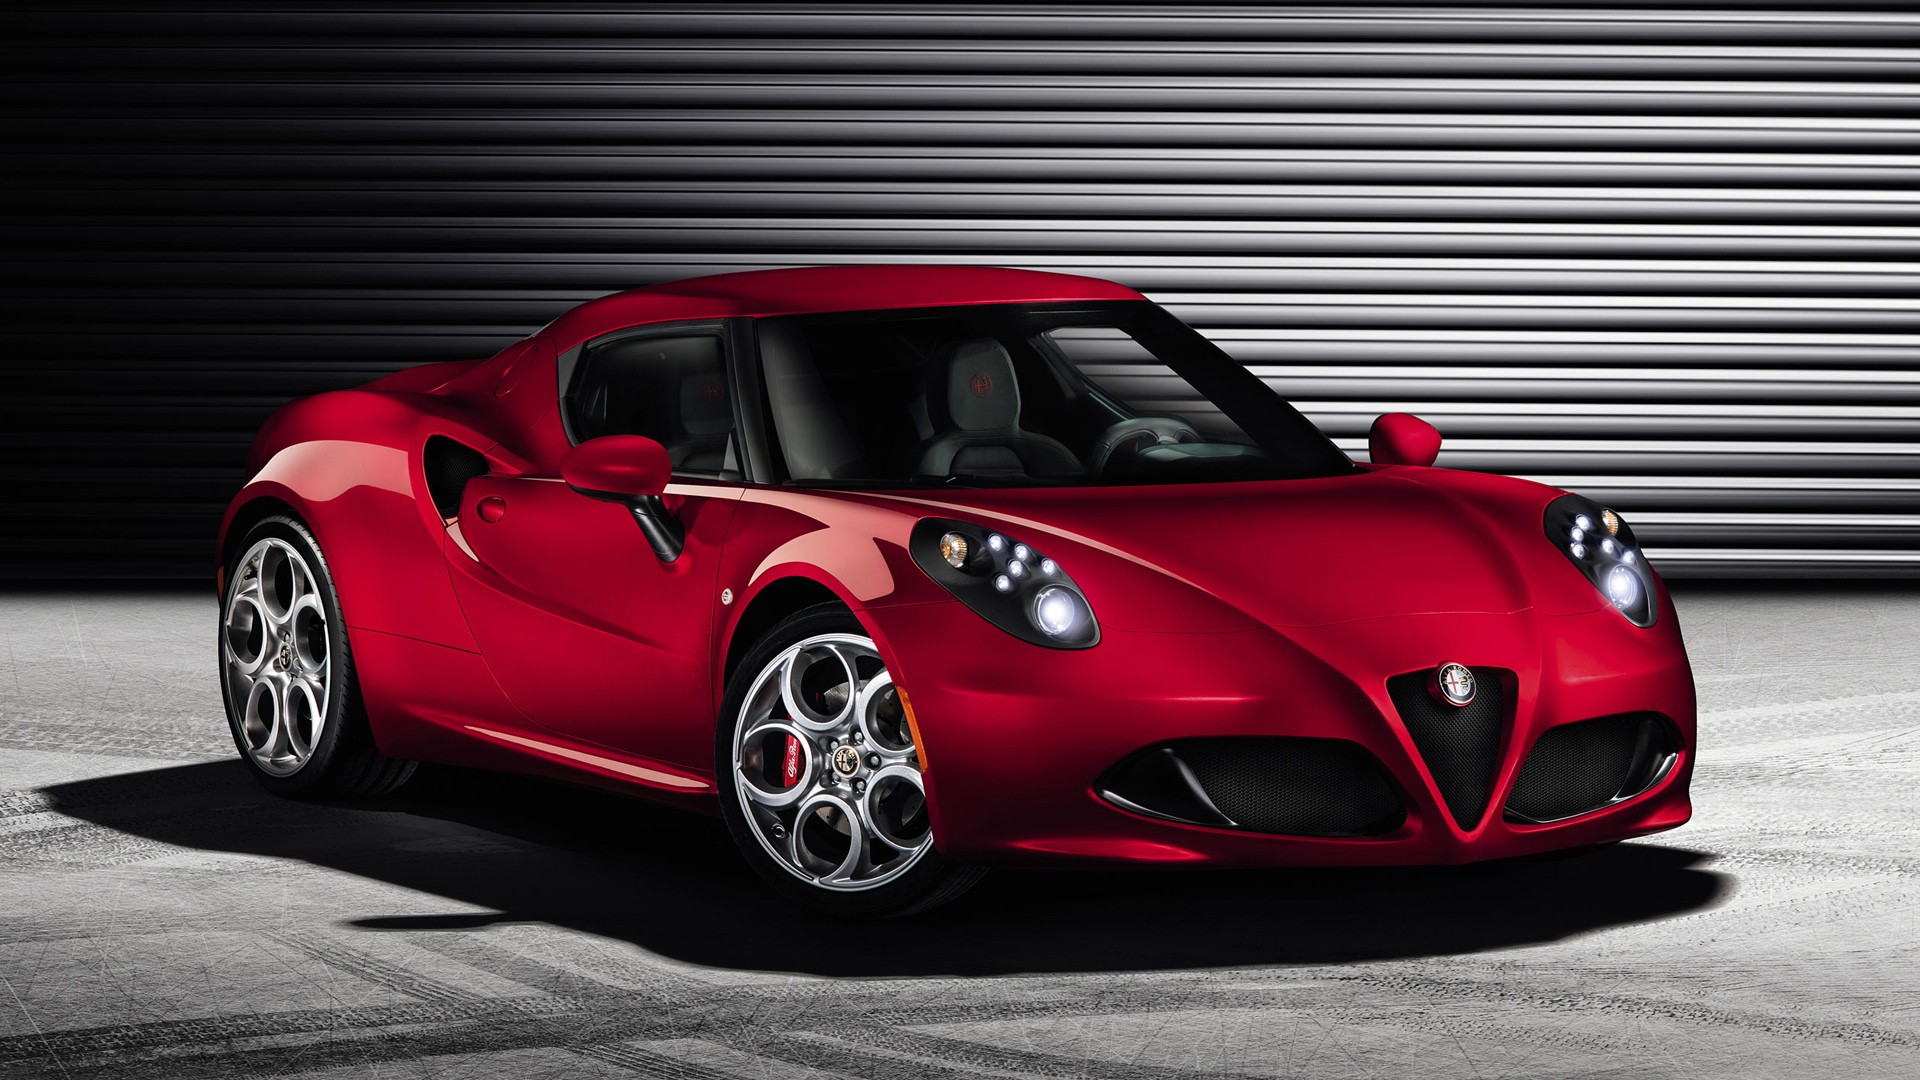 2013 alfa romeo 4c wallpaper hd car wallpapers id 3257. Black Bedroom Furniture Sets. Home Design Ideas